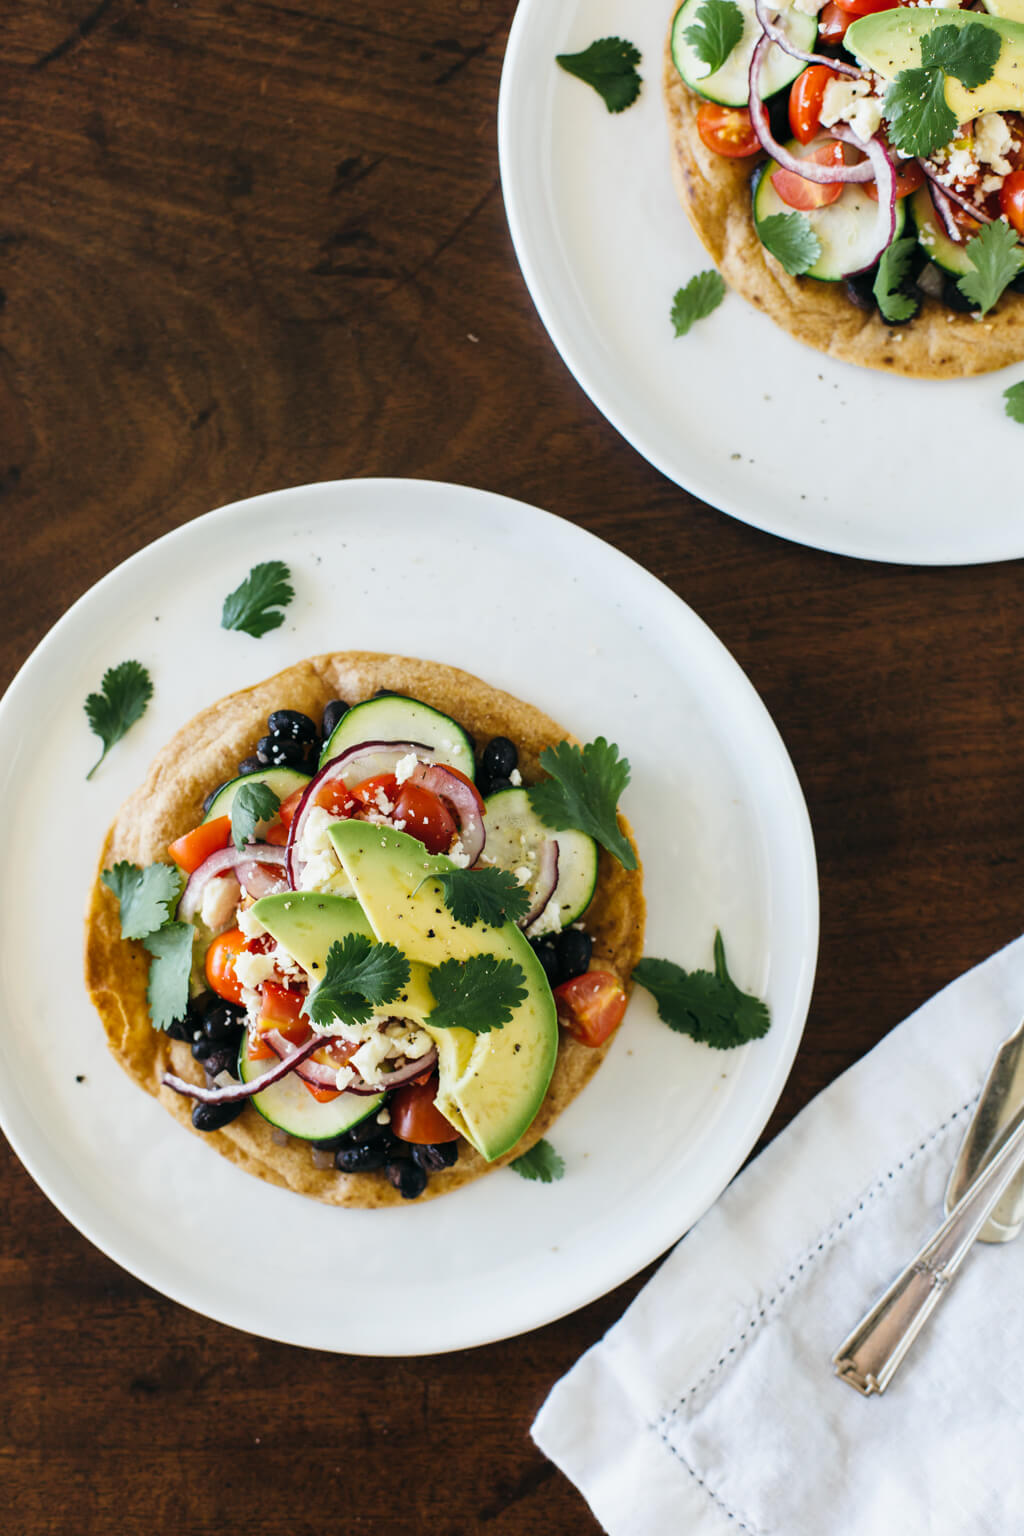 A healthy, vegetarian Mexican pizza that's loaded with fresh ingredients and topped on gluten-free, cassava flour tortillas. A tasty version you'll love!